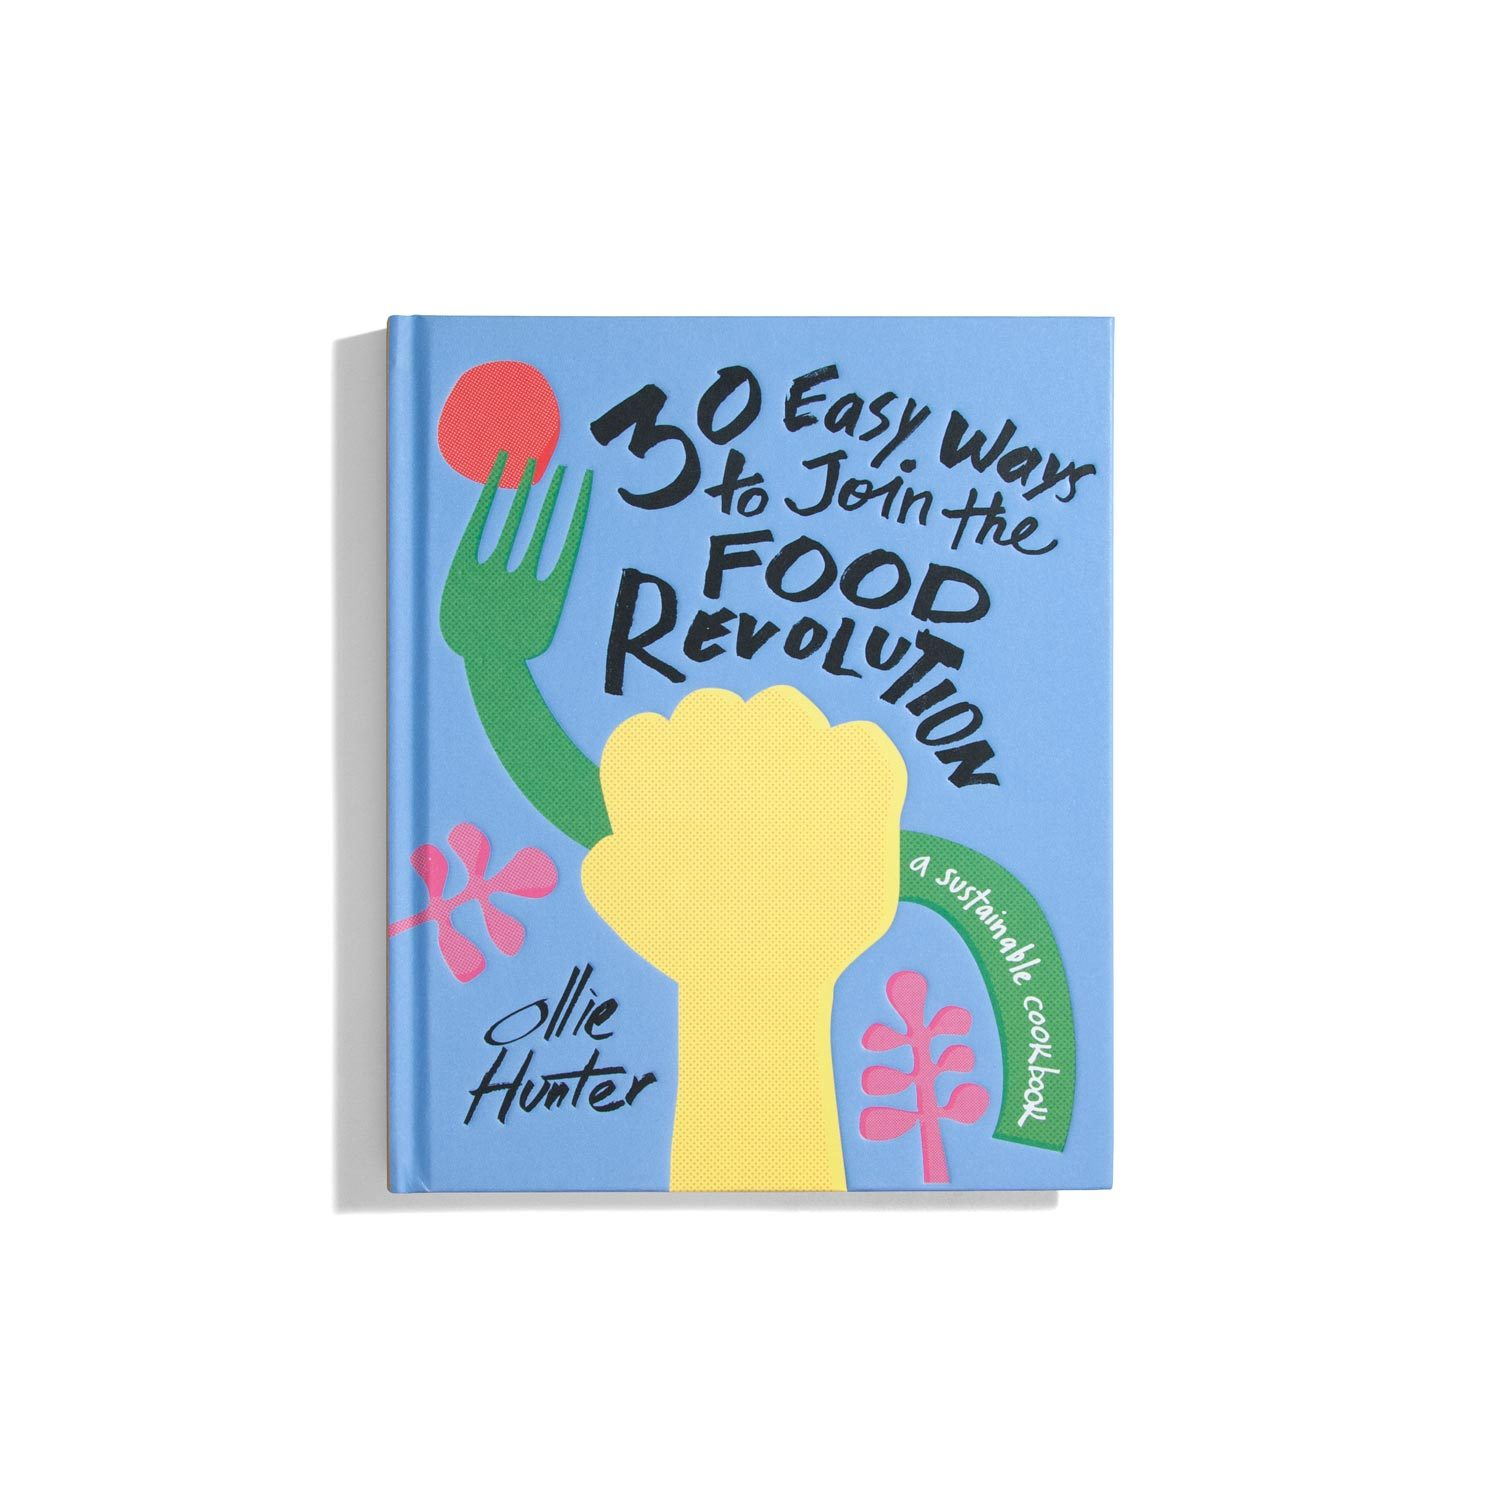 30 Easy Ways to Join the Food Revolution - Ollie Hunter